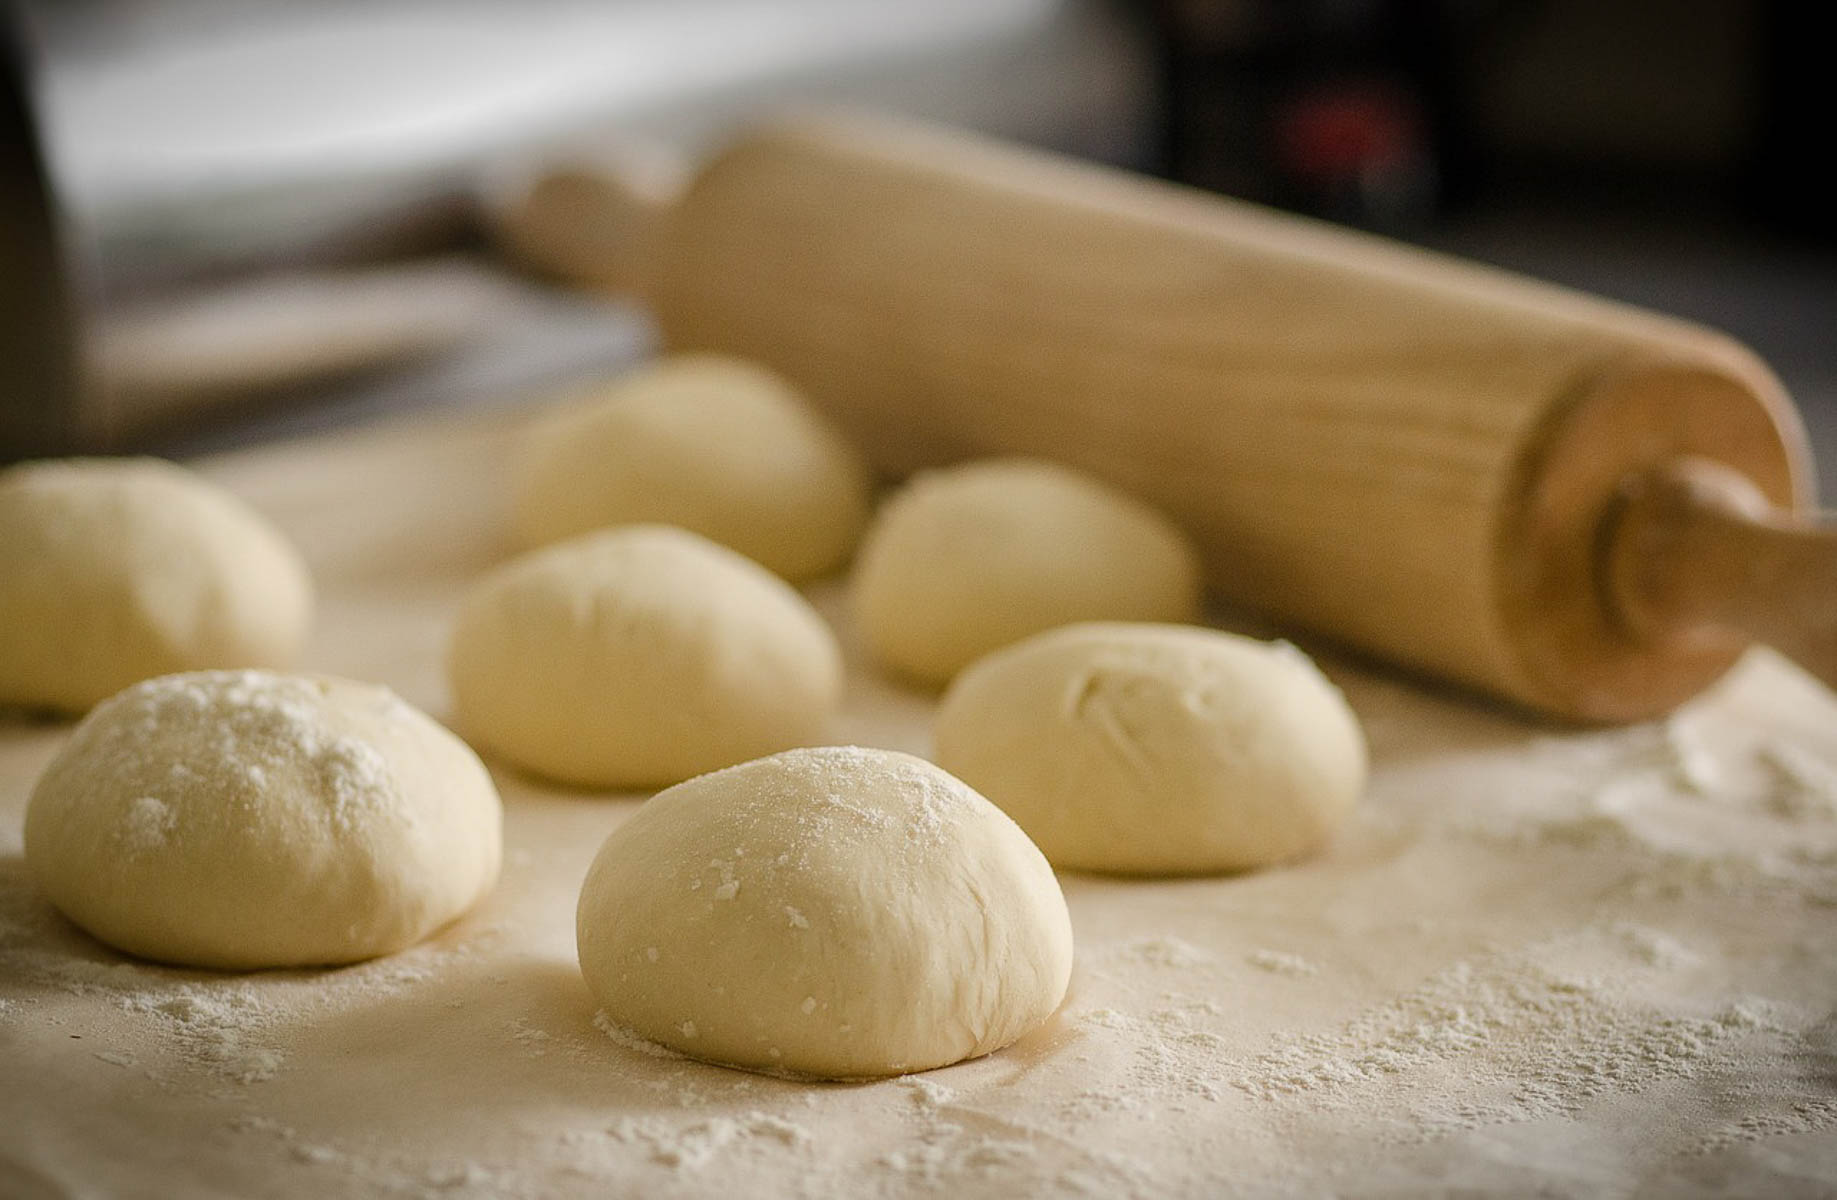 Rolling pin flour and dough made ahead | Holiday entertaining made simple with lessons learned from The Barefoot Contessa | foodwithaview.com